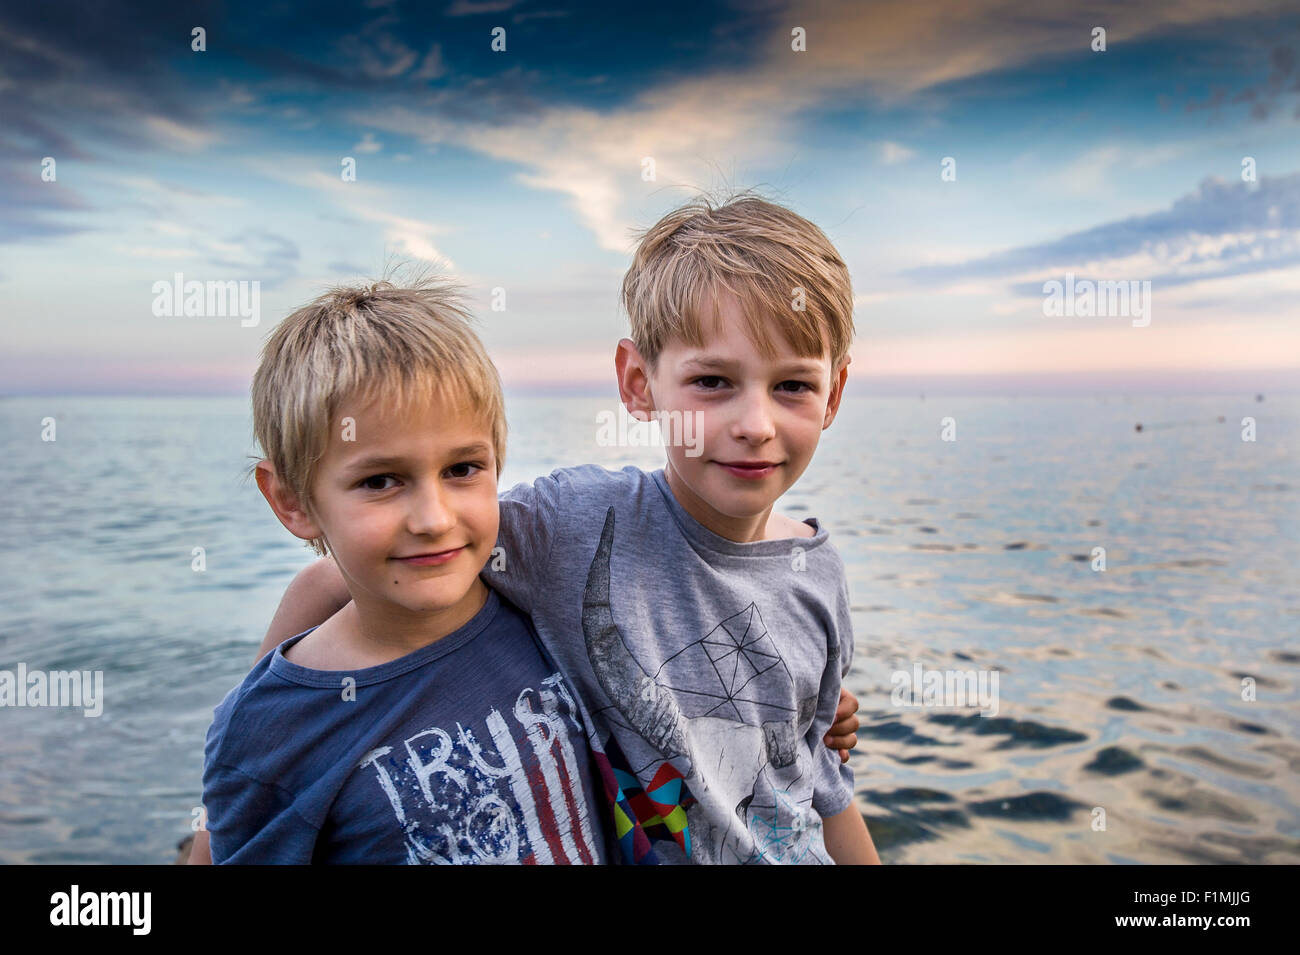 two young brothers in embrace at seacoast - Stock Image